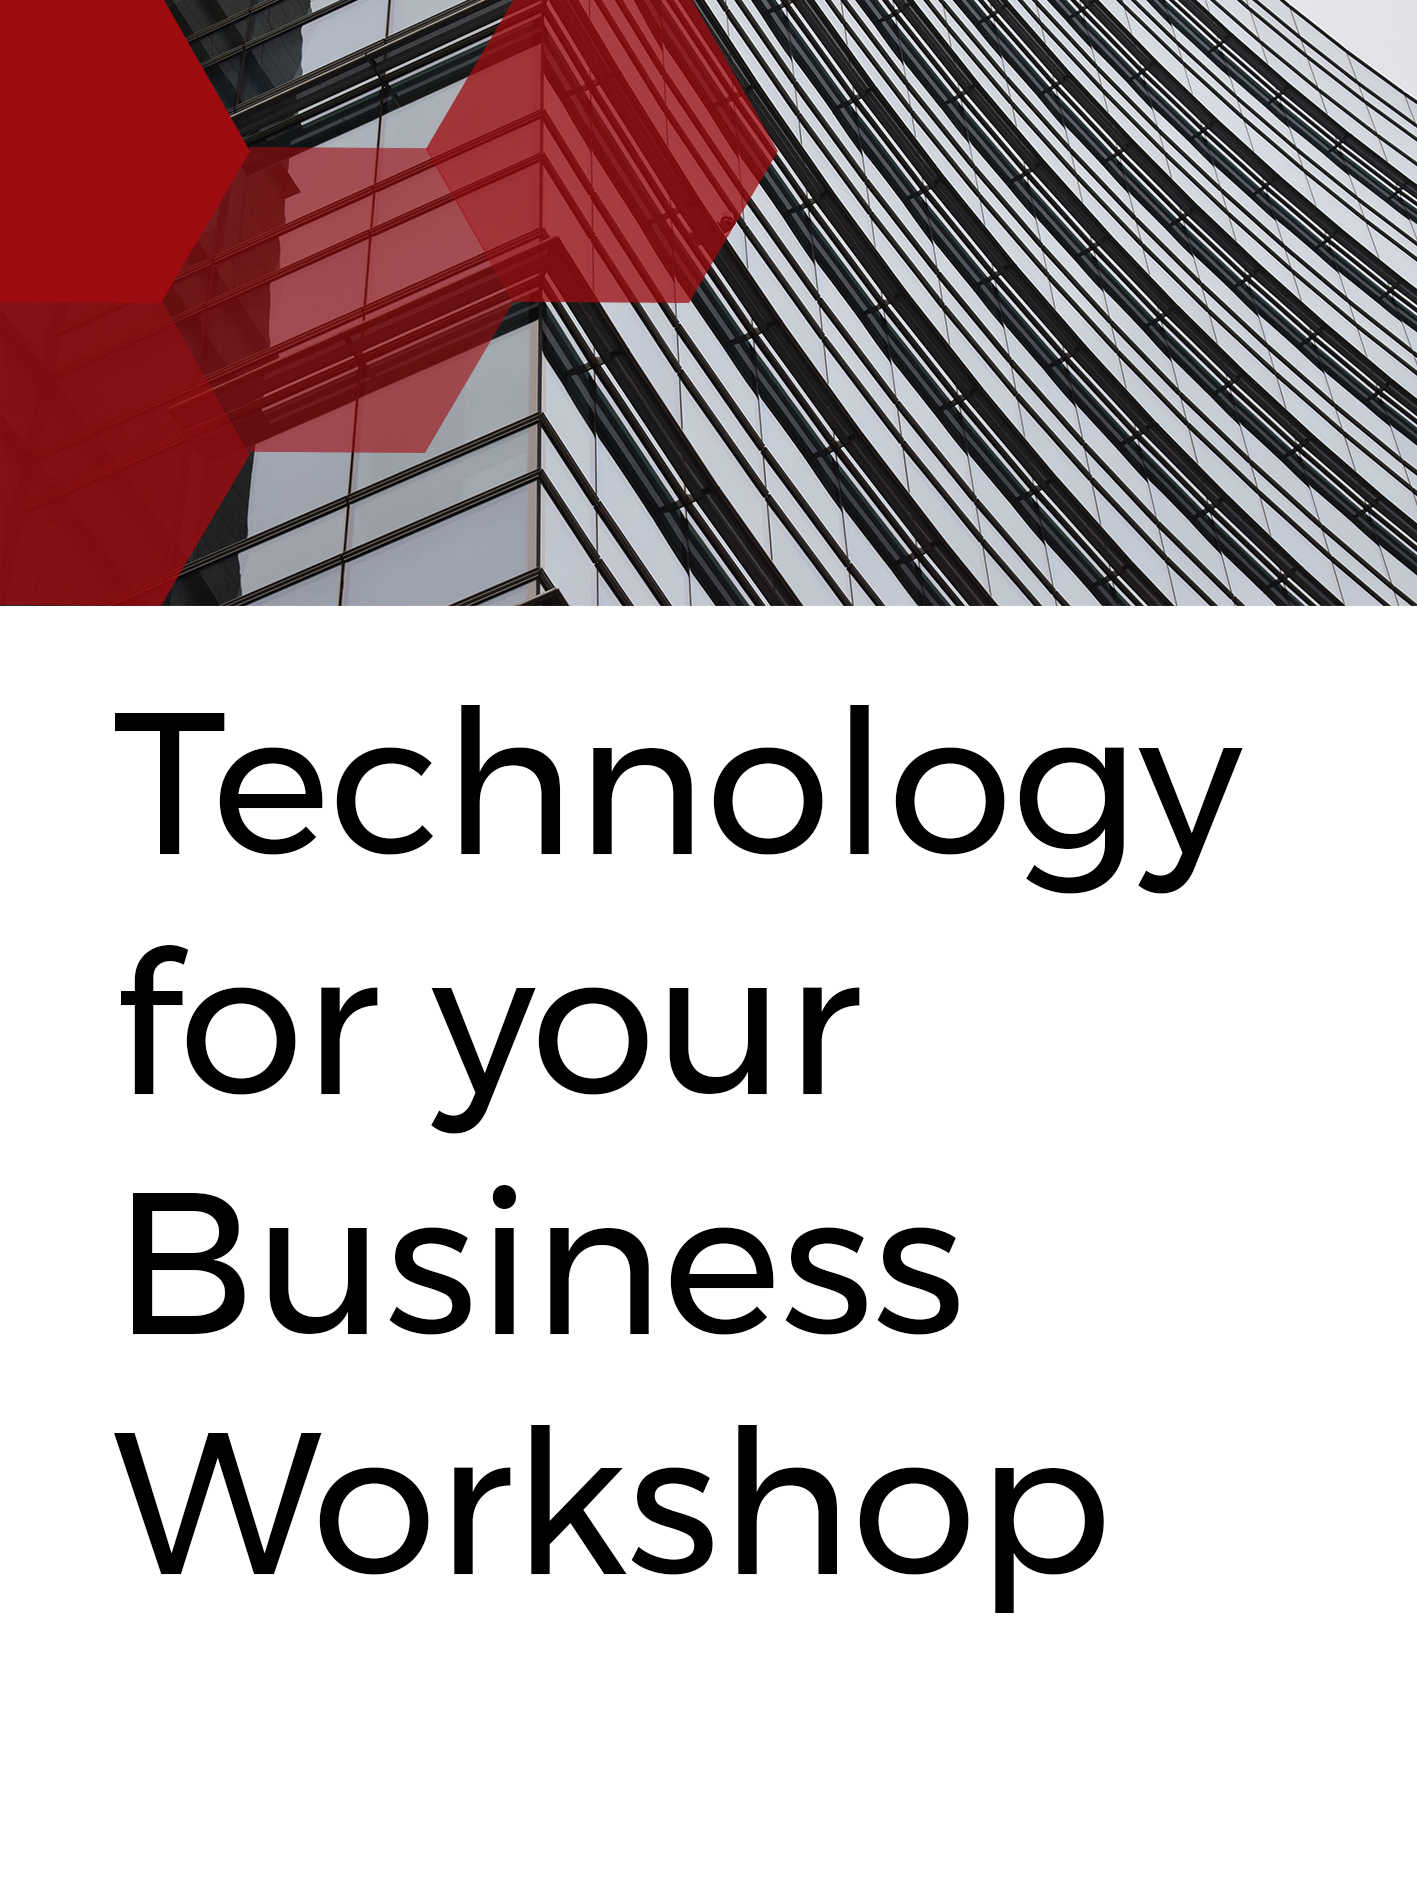 Technology for your business workshop